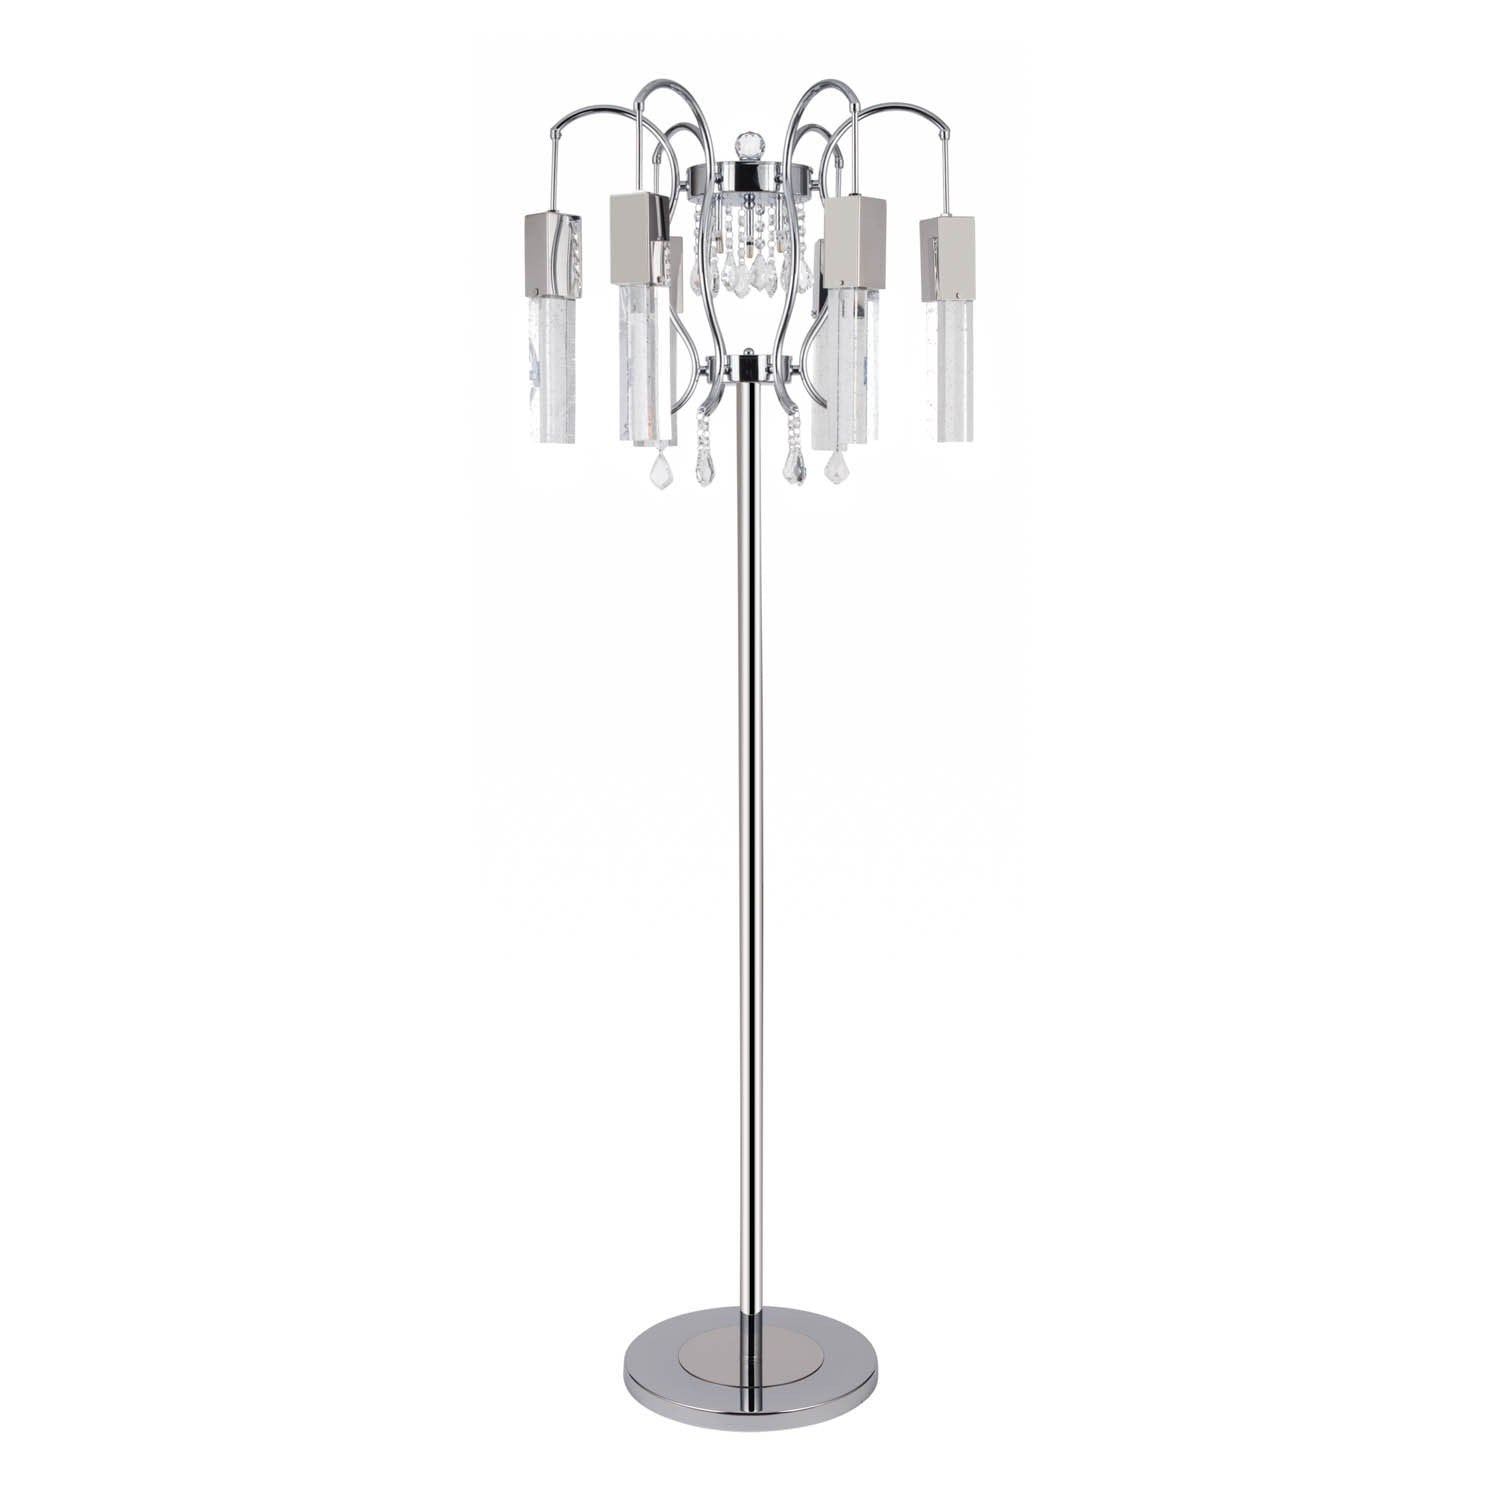 Pendant Floor Lamp: Buy Retro Chic Chandelier- Floor Lamp At Lifeix Design For